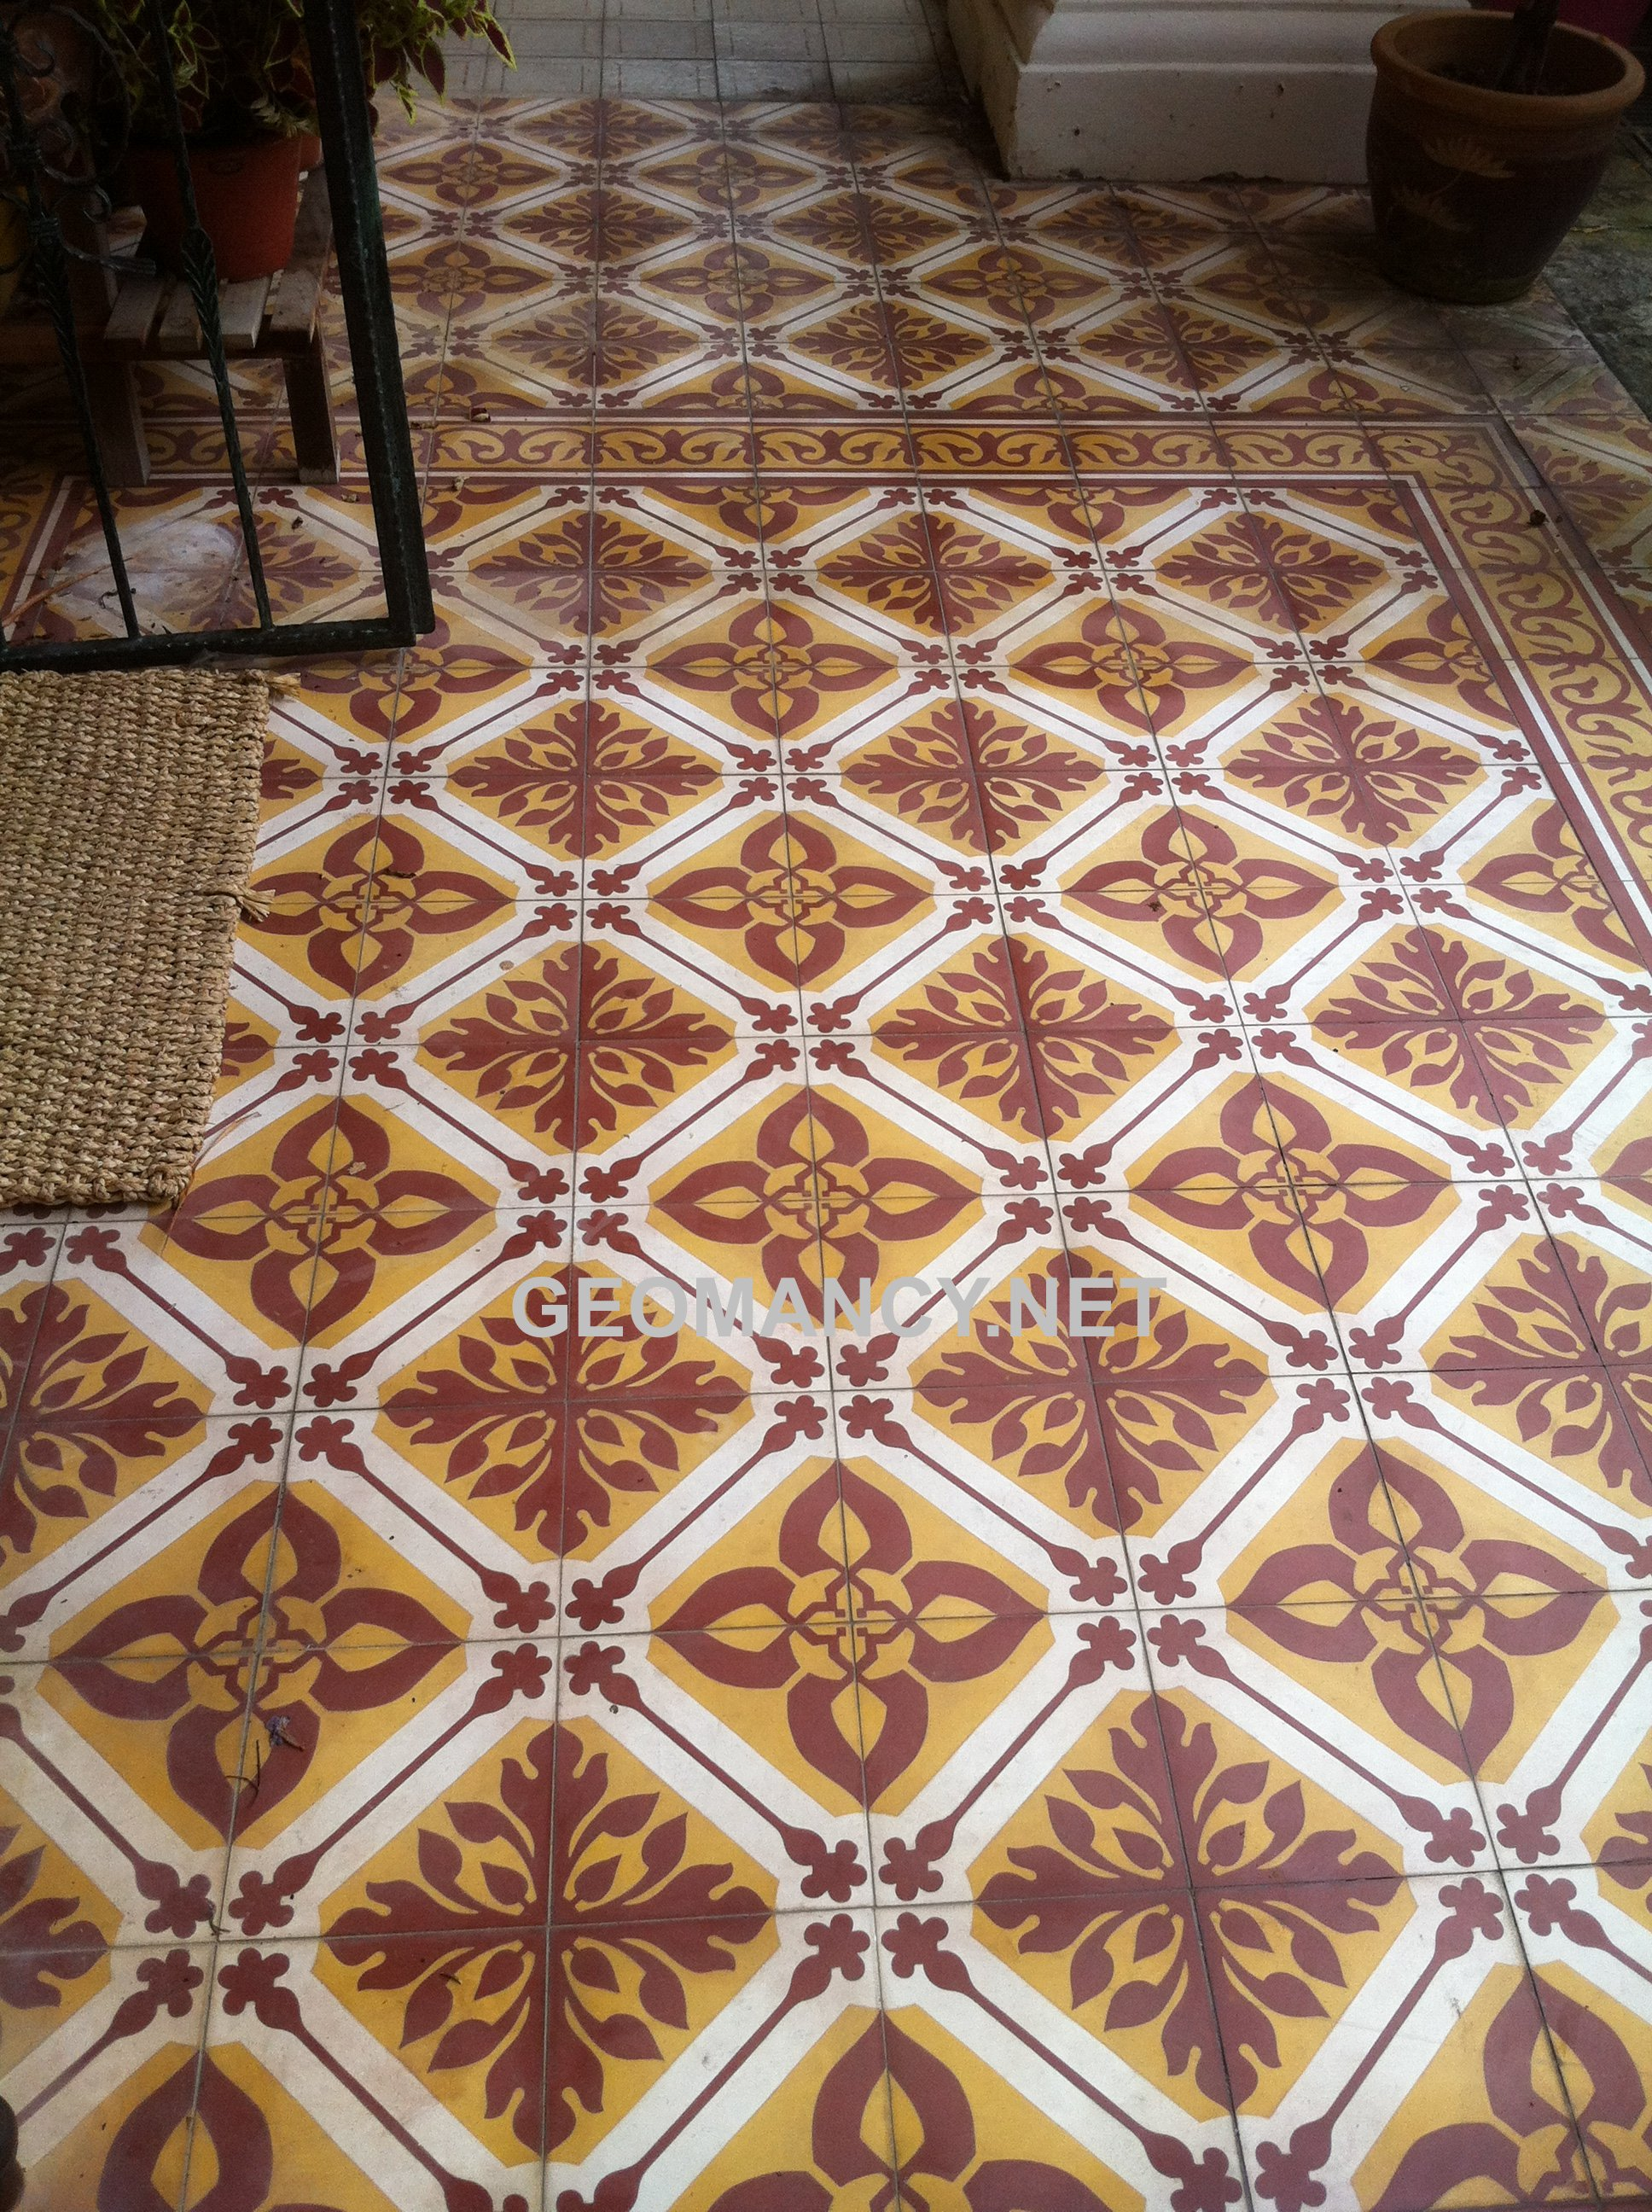 Homes with islamic floor tiles influence a walk around singapore recommended posts dailygadgetfo Choice Image